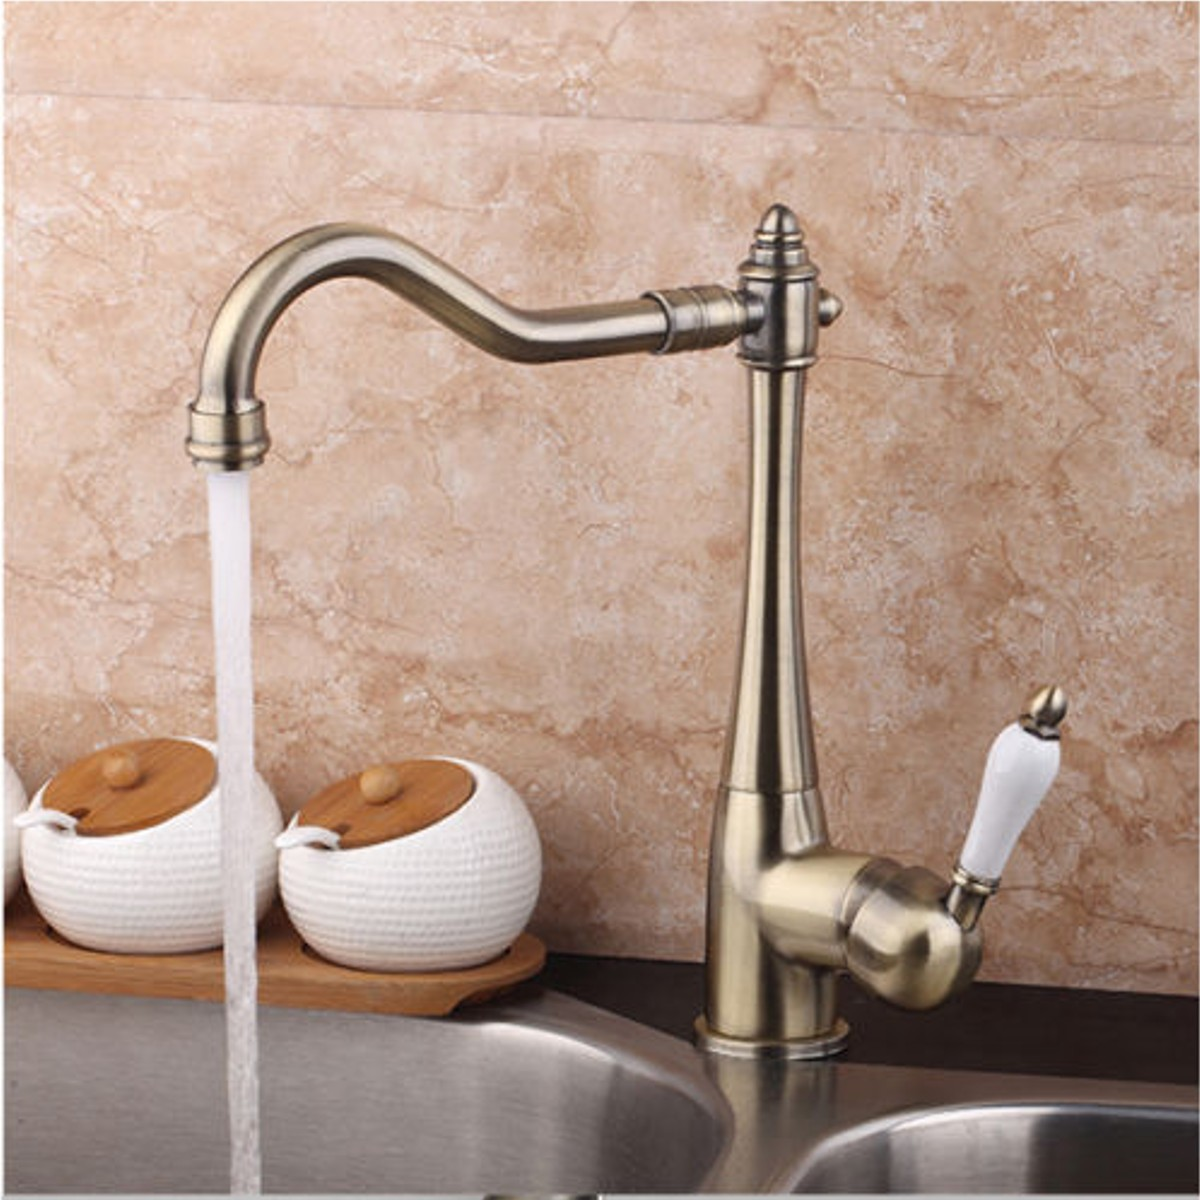 Xueqin Antique Copper Bathroom Basin Faucet Deck Mounted Classic Single Handle Mixer Tap Bathroom Sink Faucet Hot and Cold WaterXueqin Antique Copper Bathroom Basin Faucet Deck Mounted Classic Single Handle Mixer Tap Bathroom Sink Faucet Hot and Cold Water